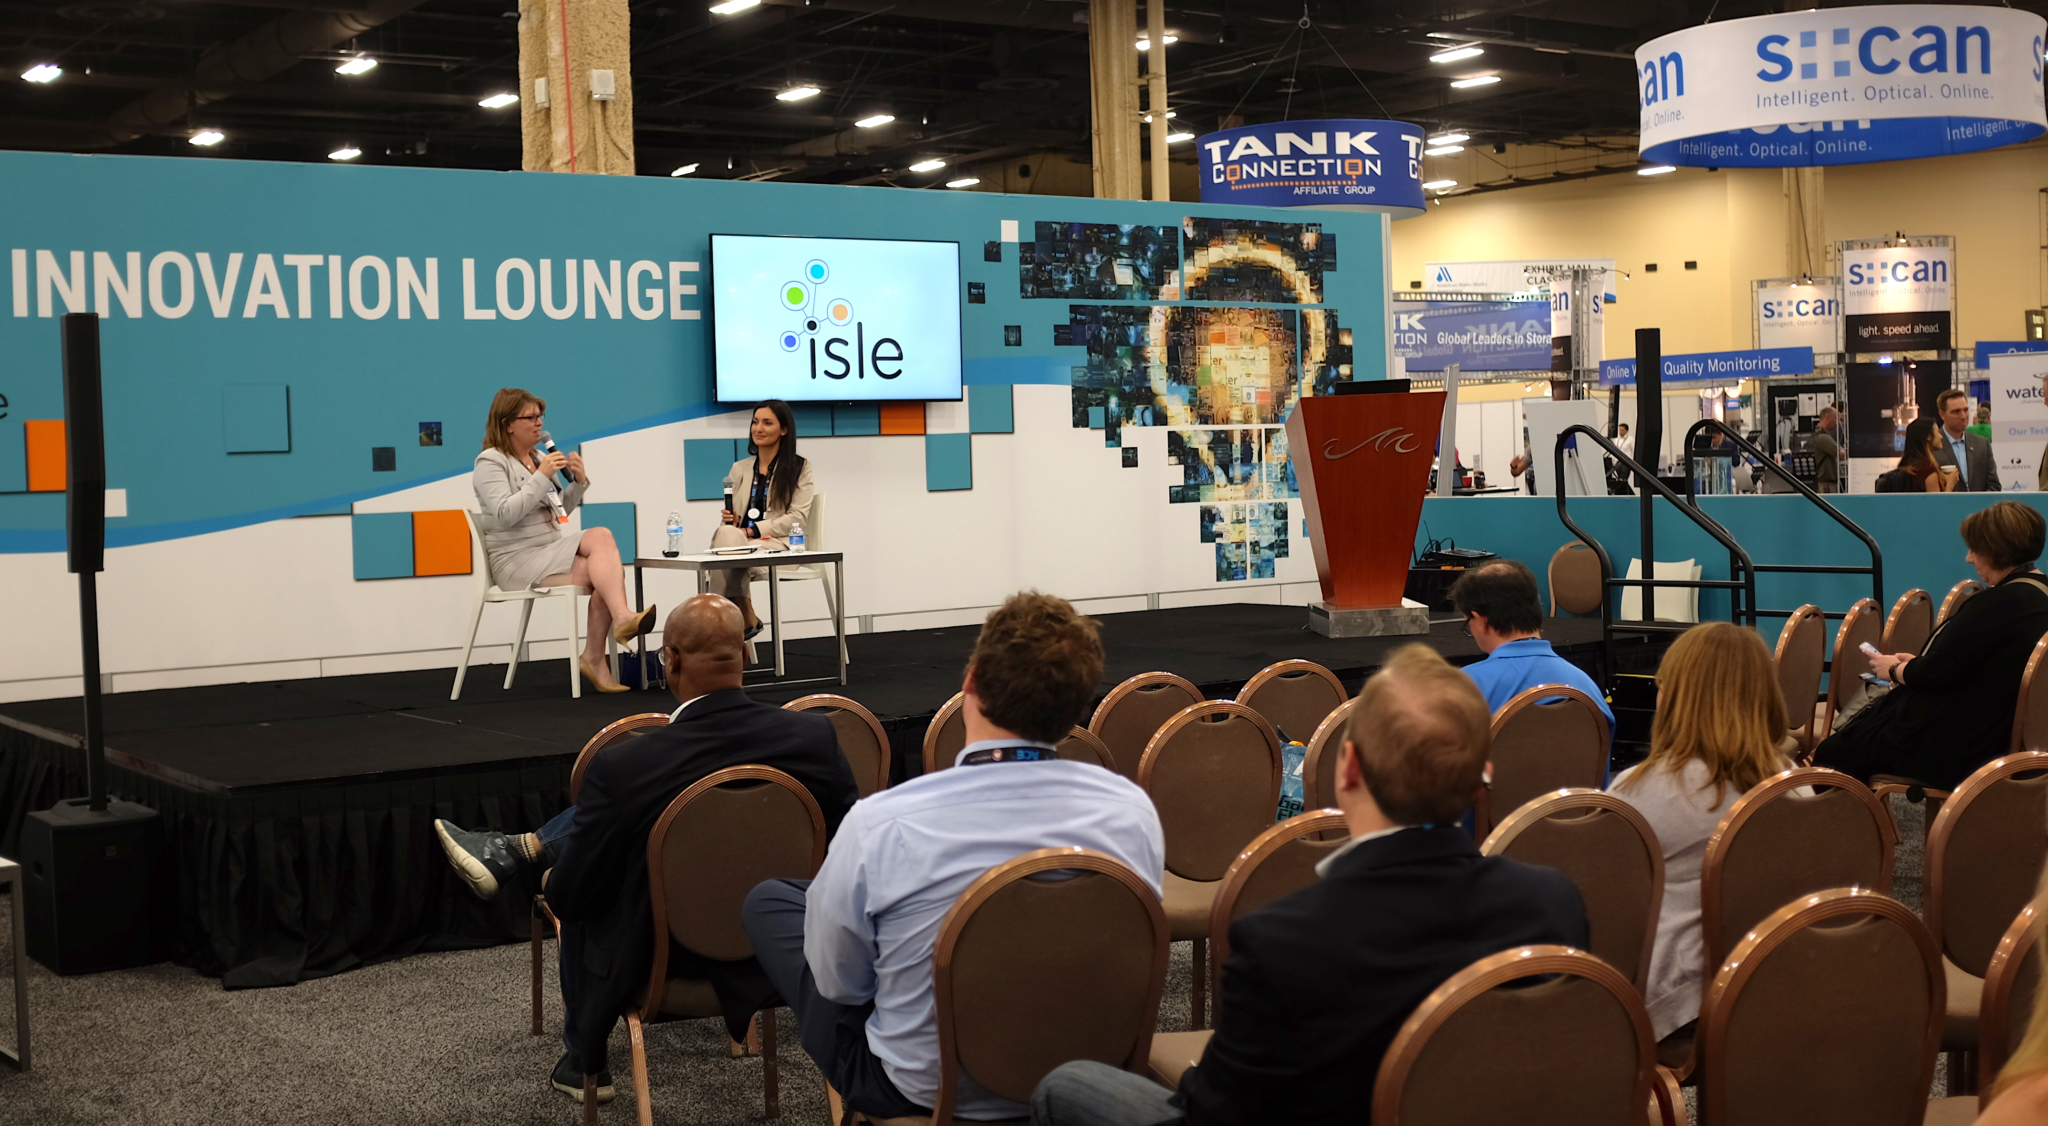 The Innovation Lounge at ACE18 was a hot spot for informative presentations and sharing ideas in the water sector